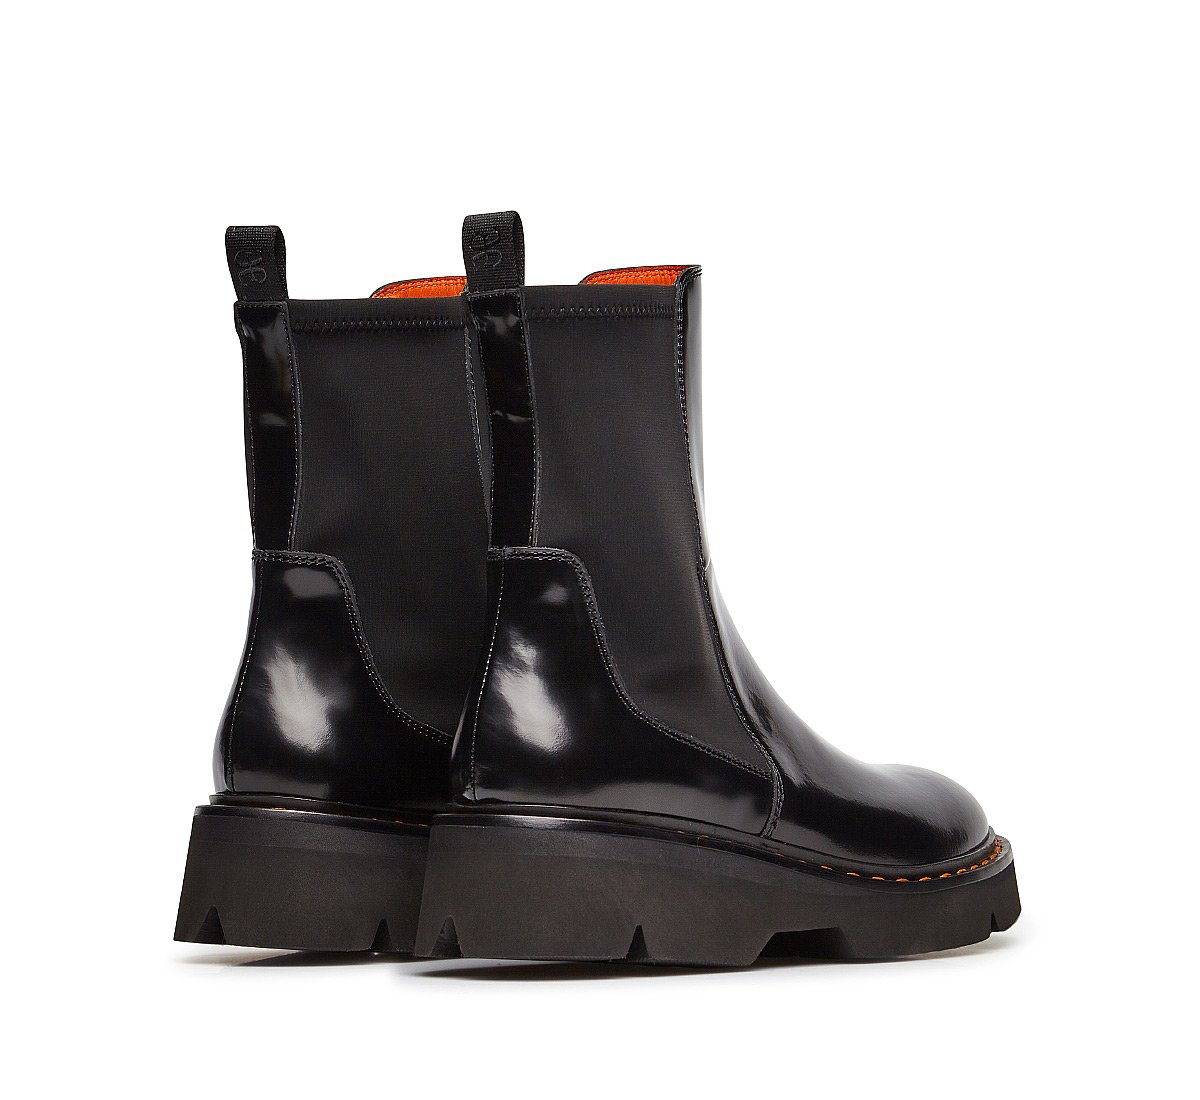 Beatle boots in brushed calfskin